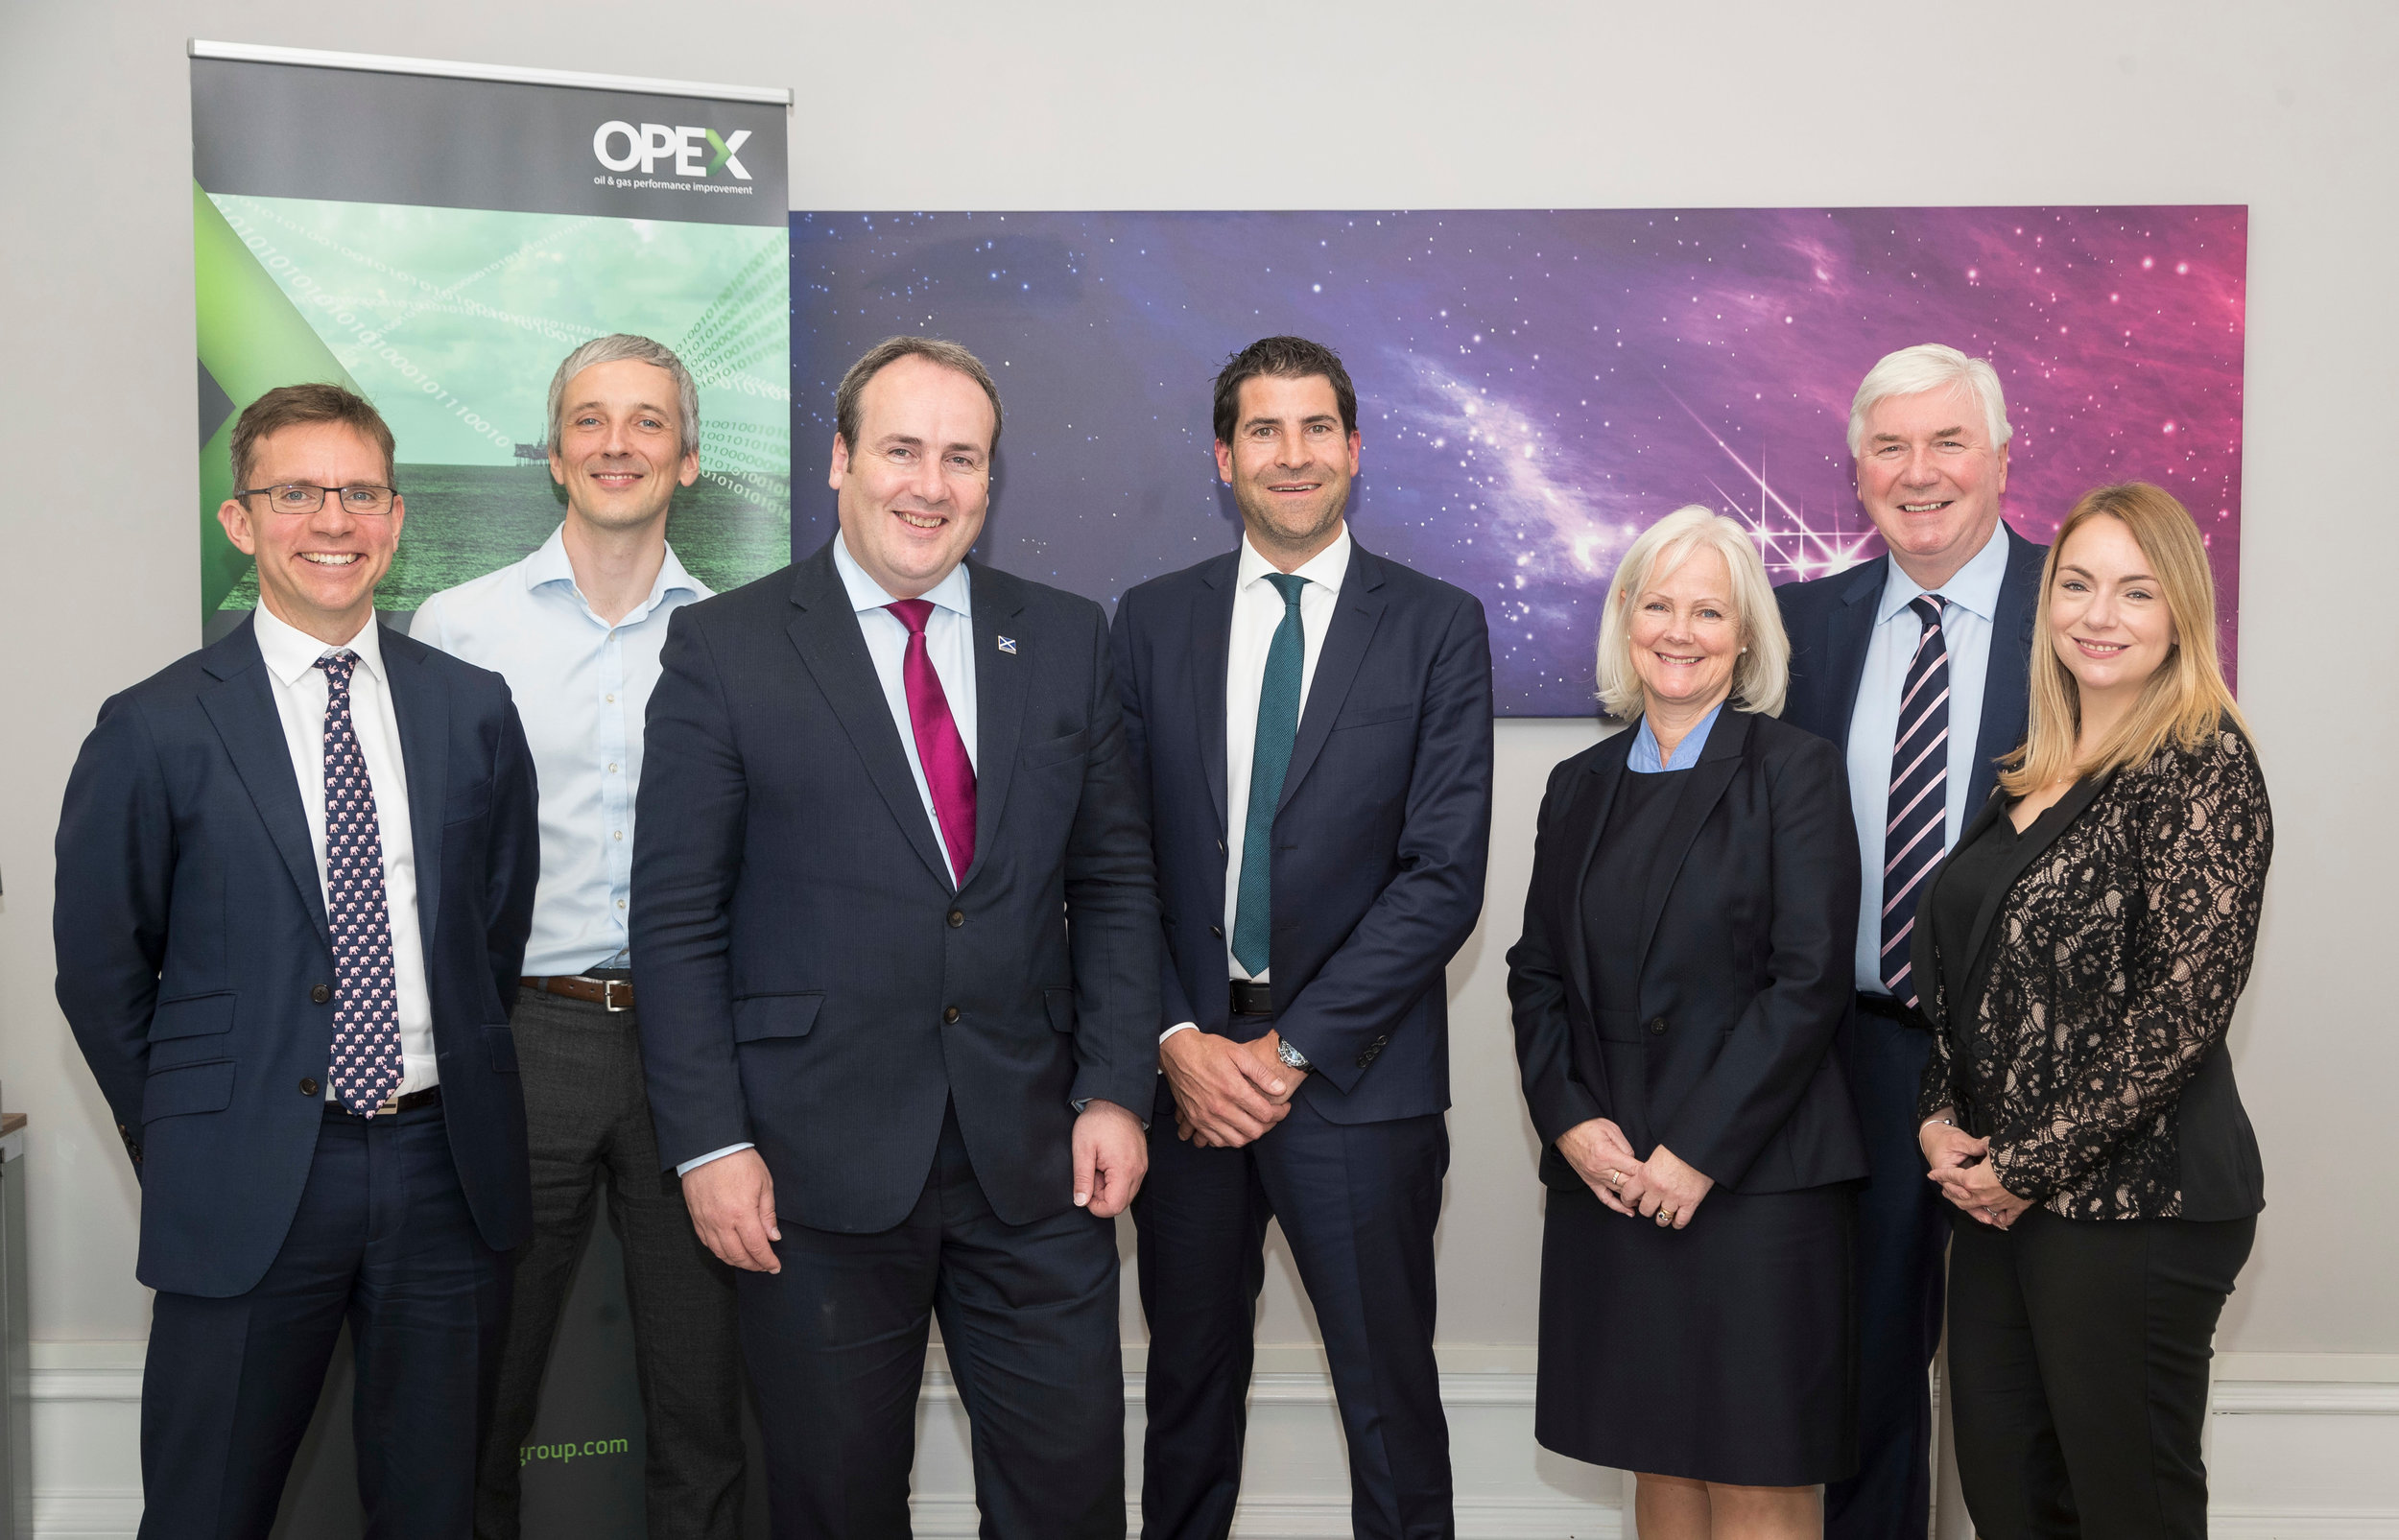 Meeting the OPEX team